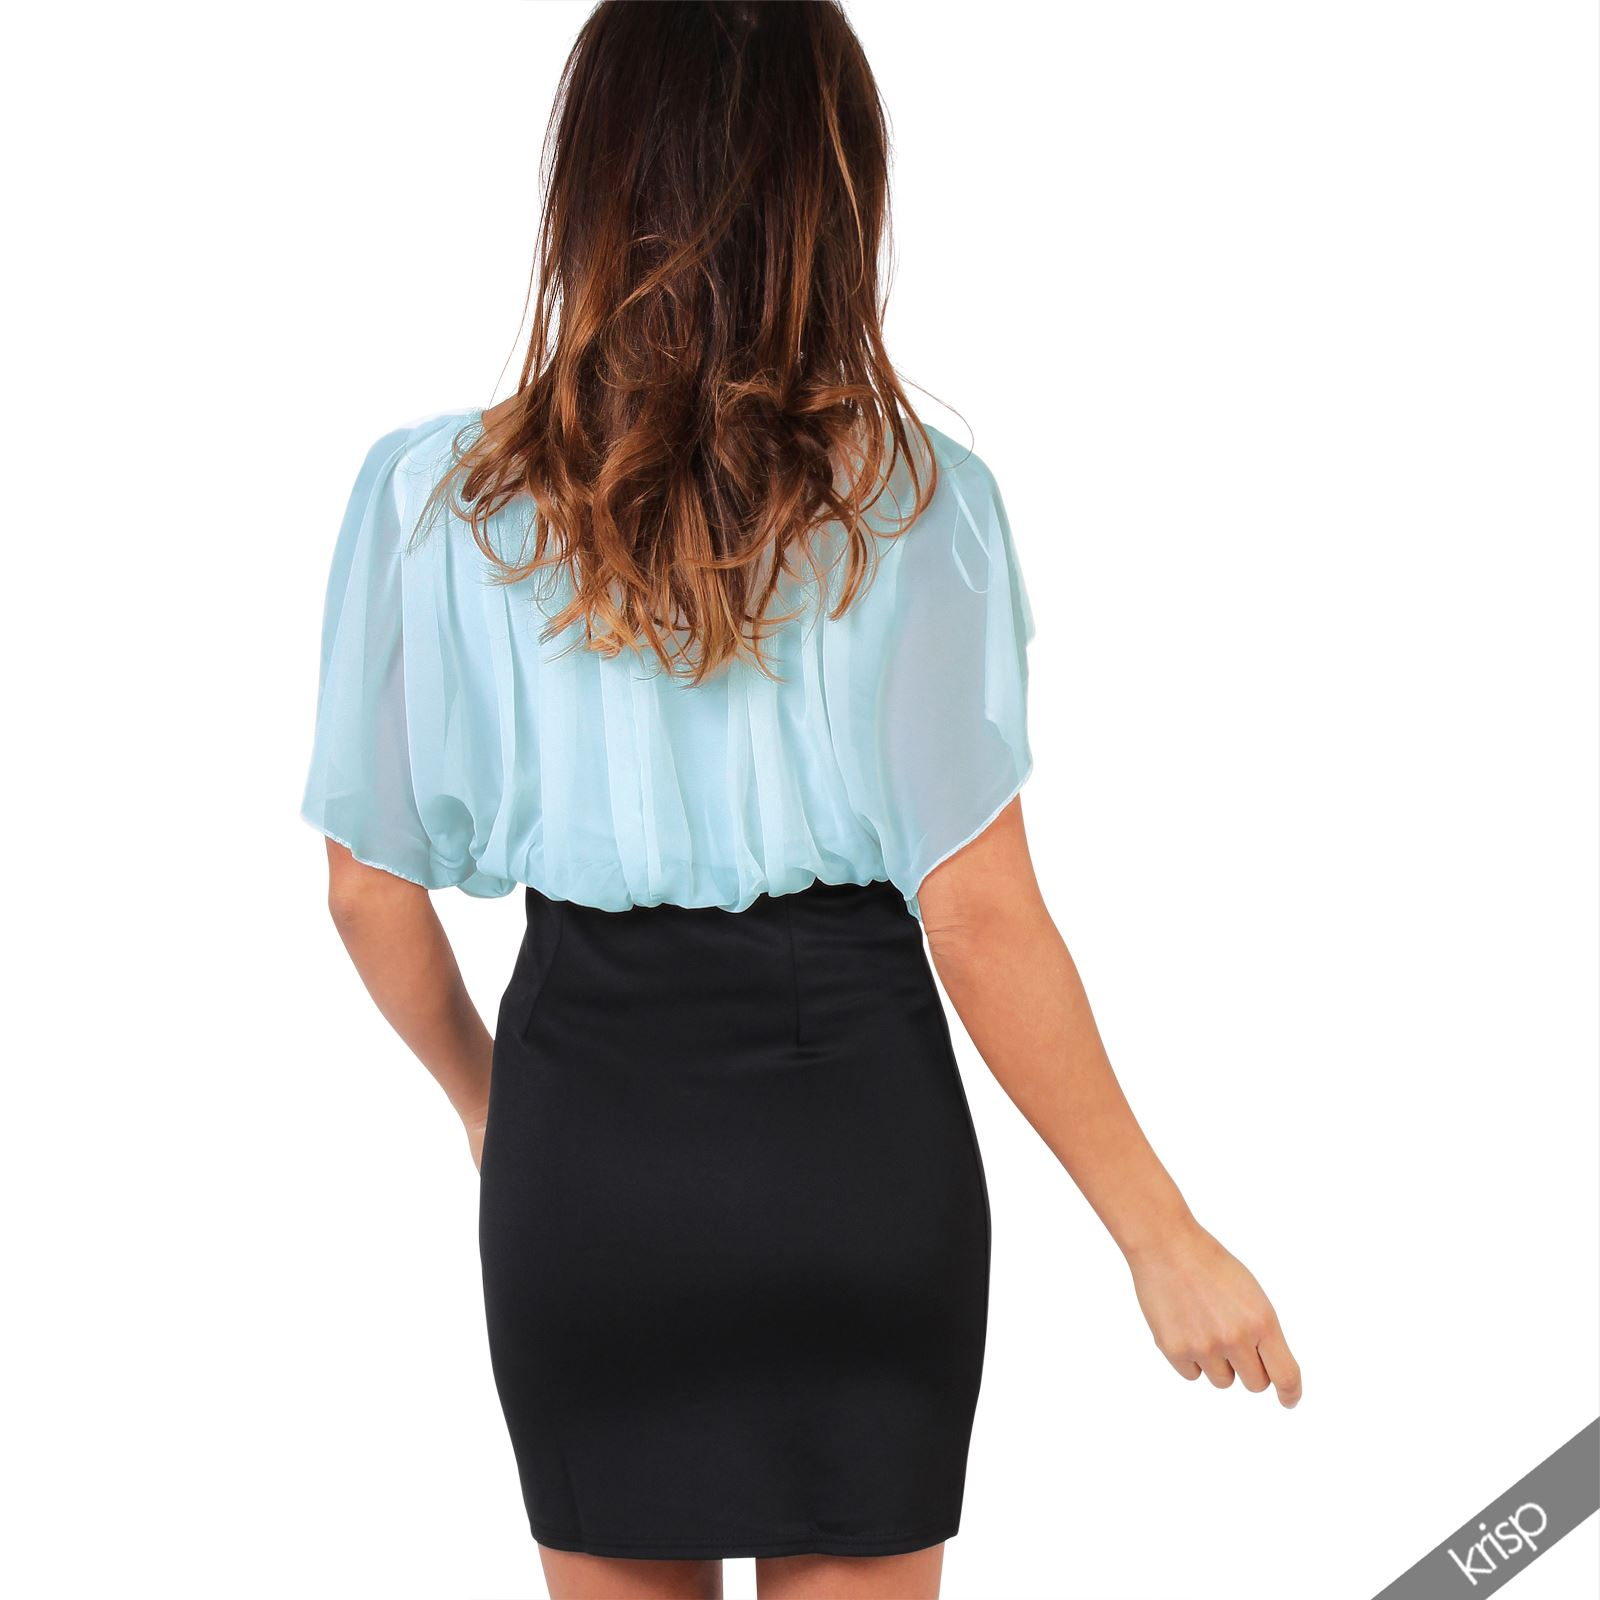 Blouse Pencil Dress 107